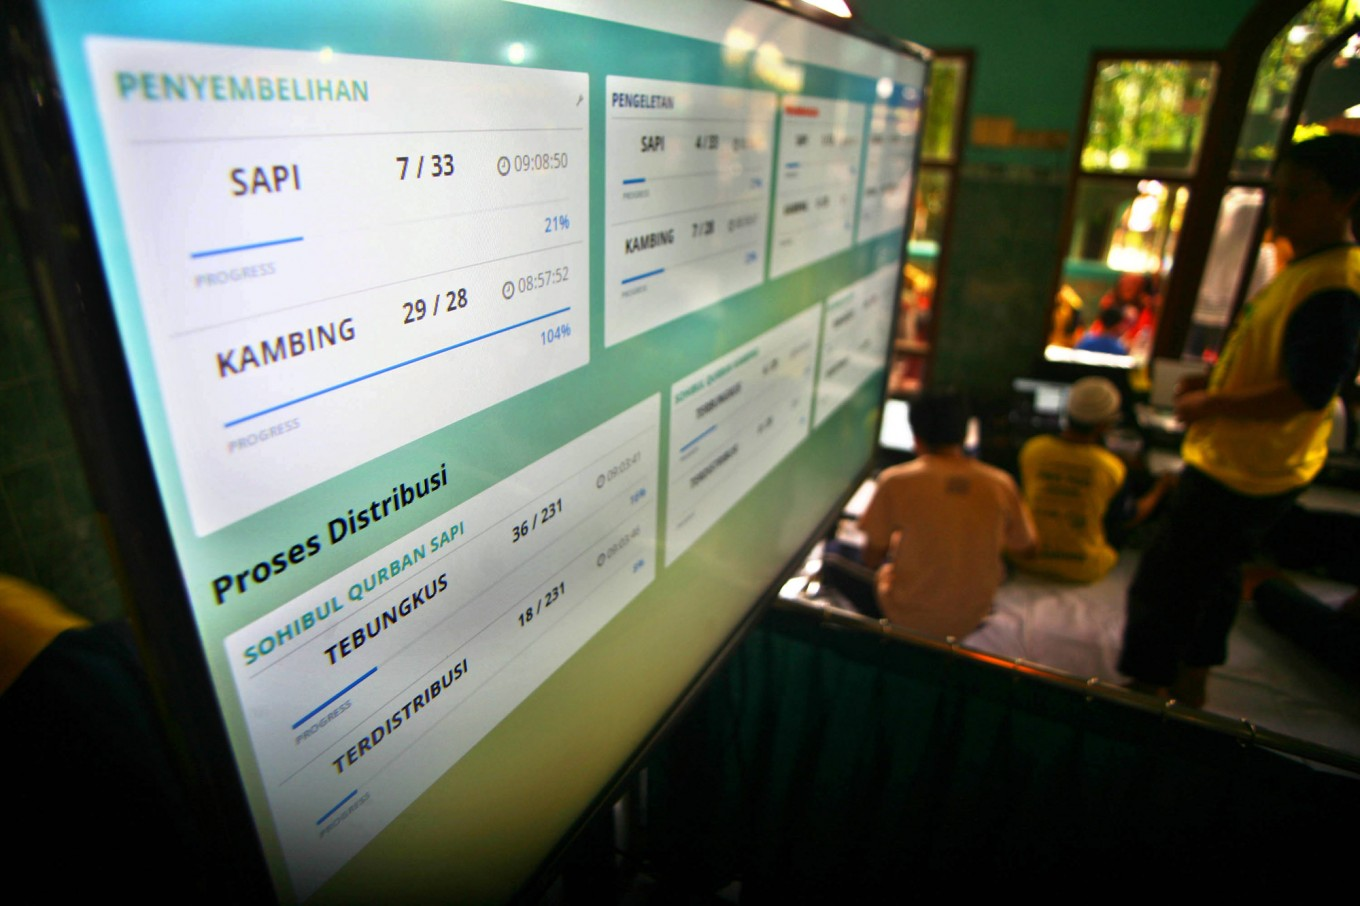 A screen shows information on the number of animals that had been slaughtered, packed and distributed during Idul Adha celebrations at Jogokariyan Mosque in Yogyakarta on Sept. 12. JP/Aditya Sagita